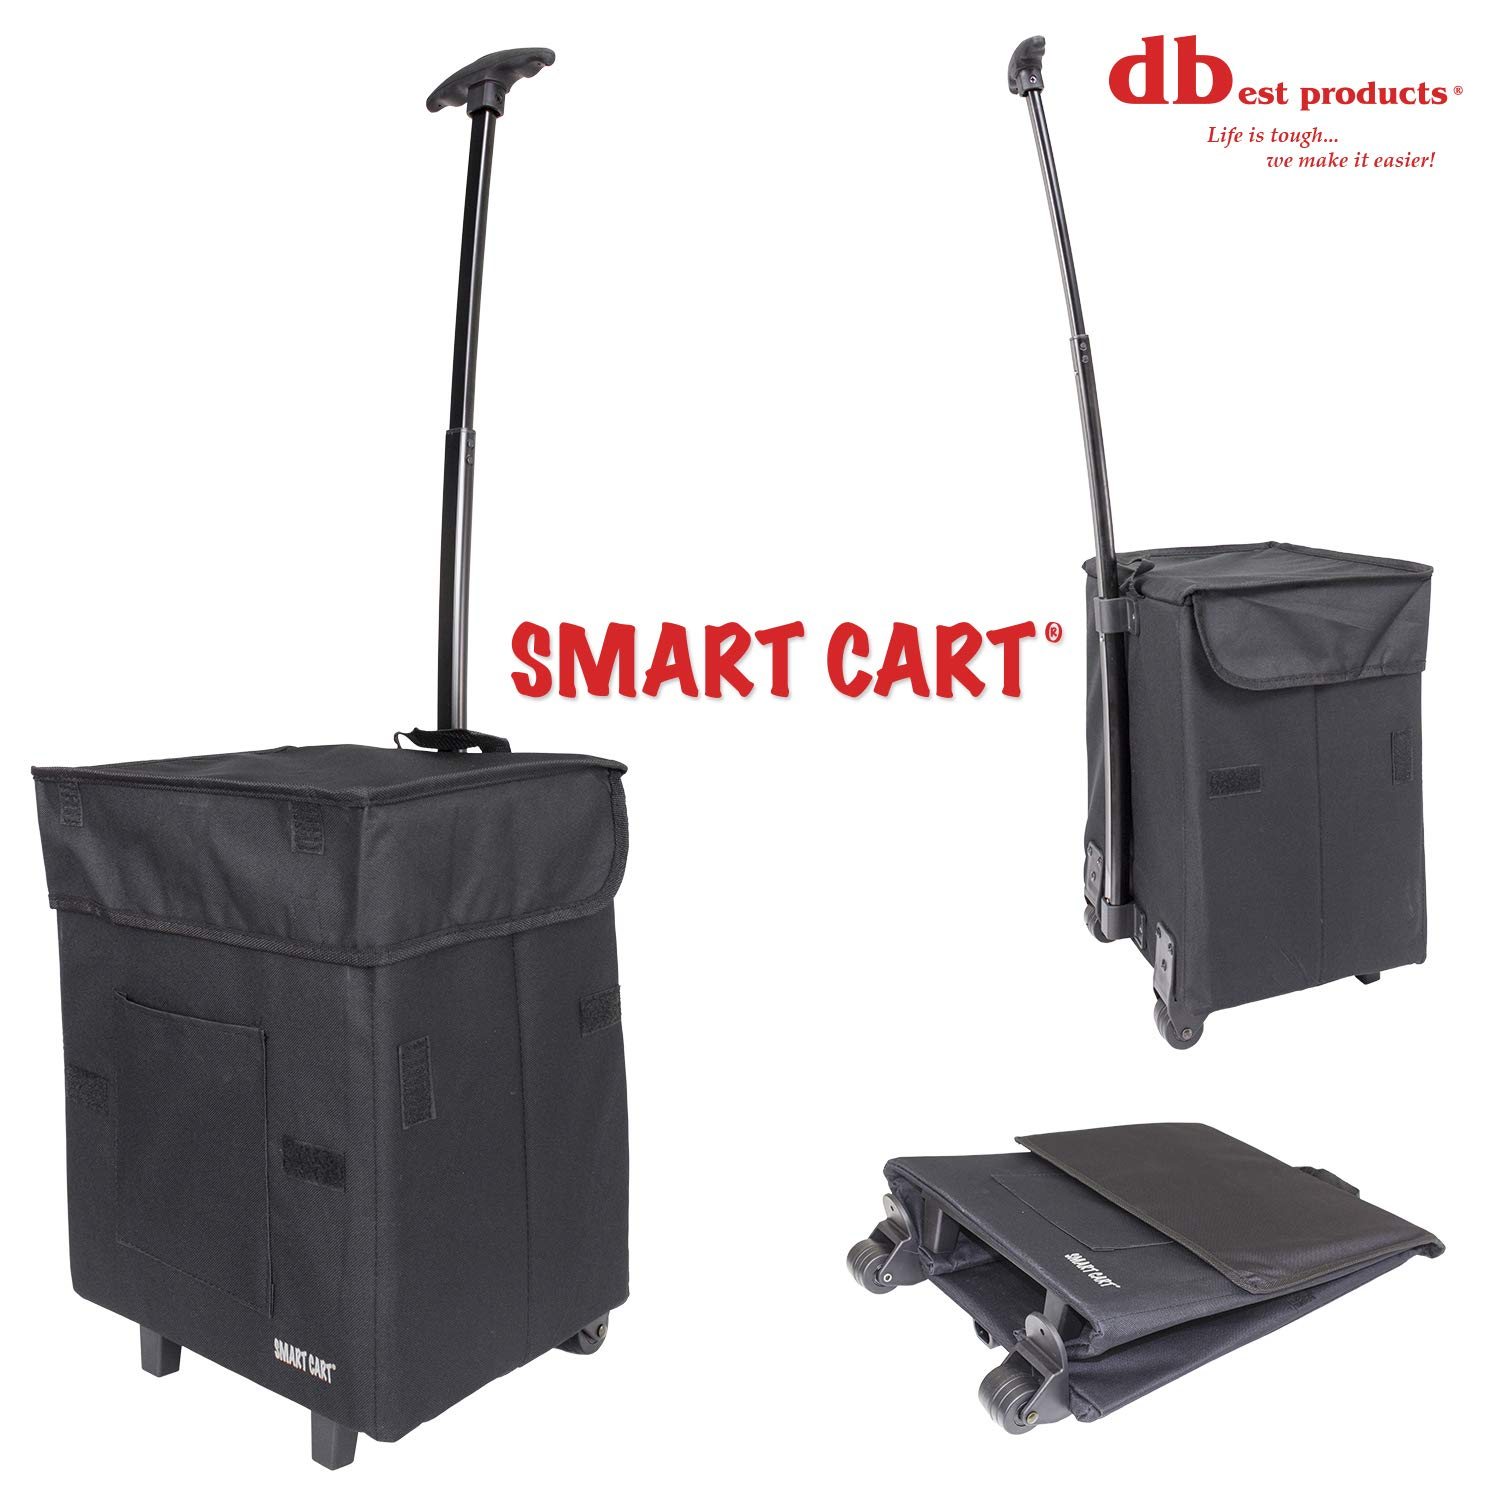 dbest products Smart Cart Rolling Multipurpose Collapsible Basket Scrapbooking Blackout